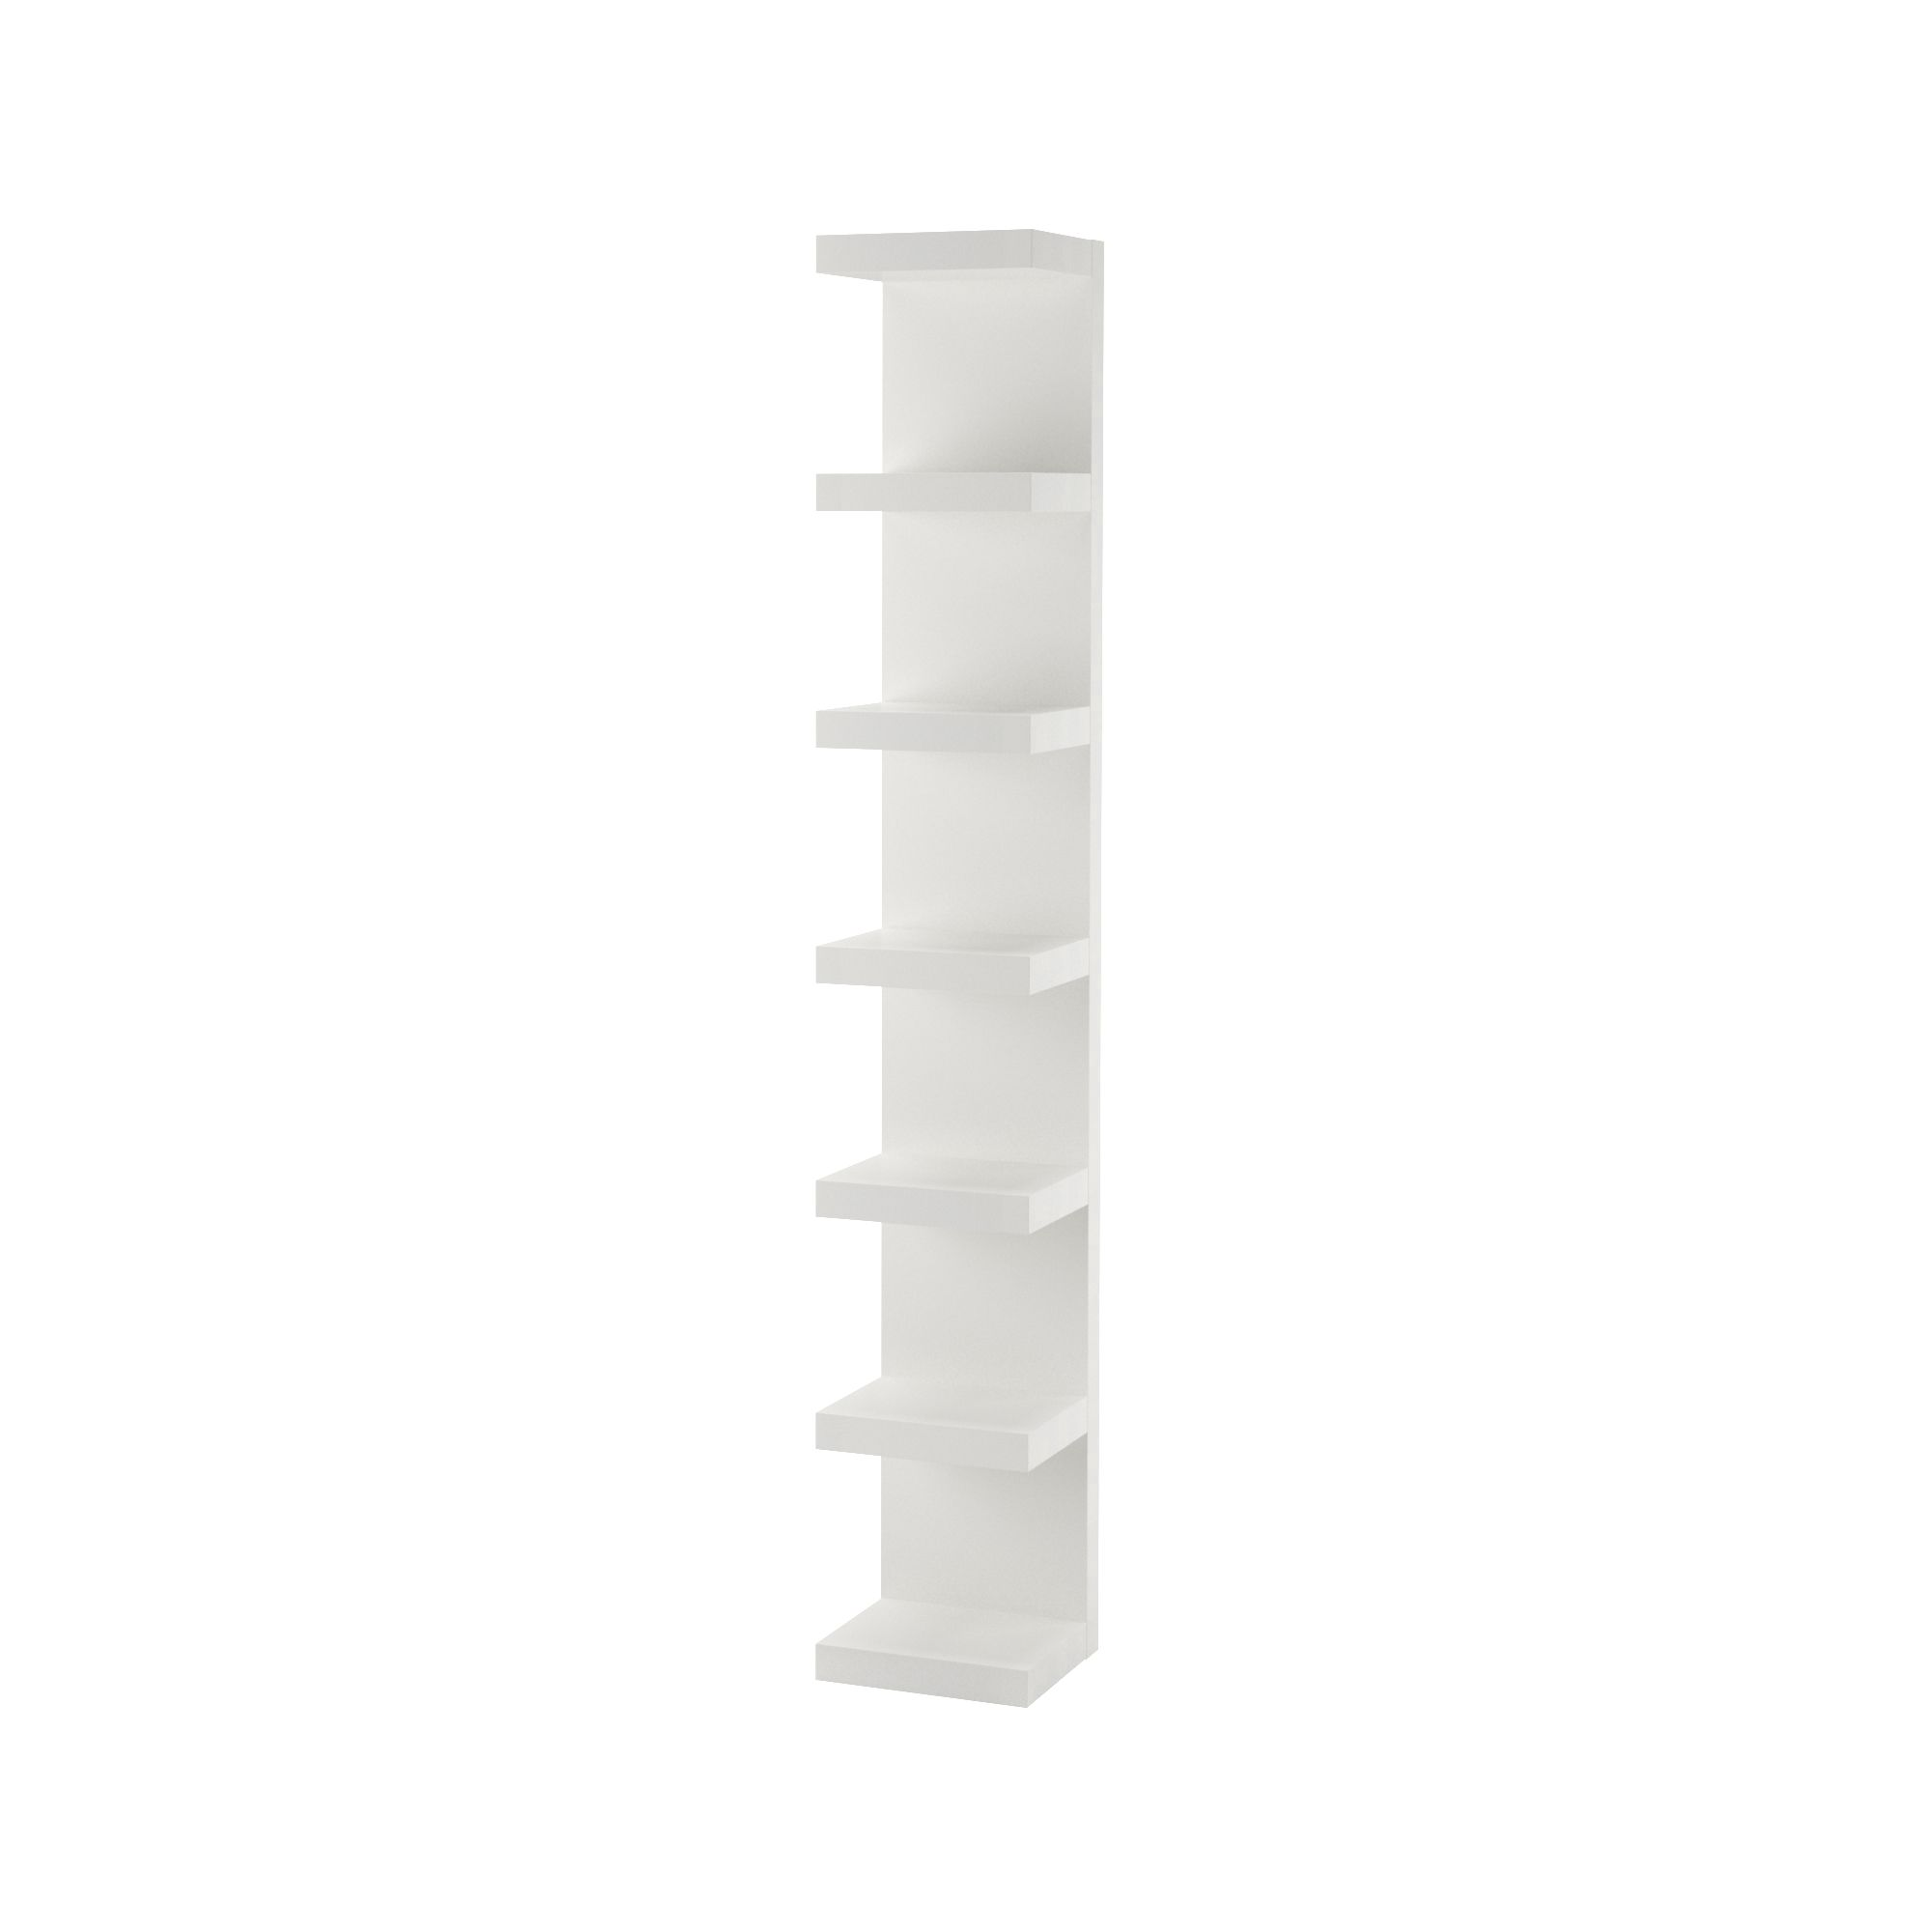 Lack Wall Shelf Unit White 11 3 4x74 3 4 In 2020 Wall Shelf Unit Ikea Lack Wall Shelf White Wall Shelves